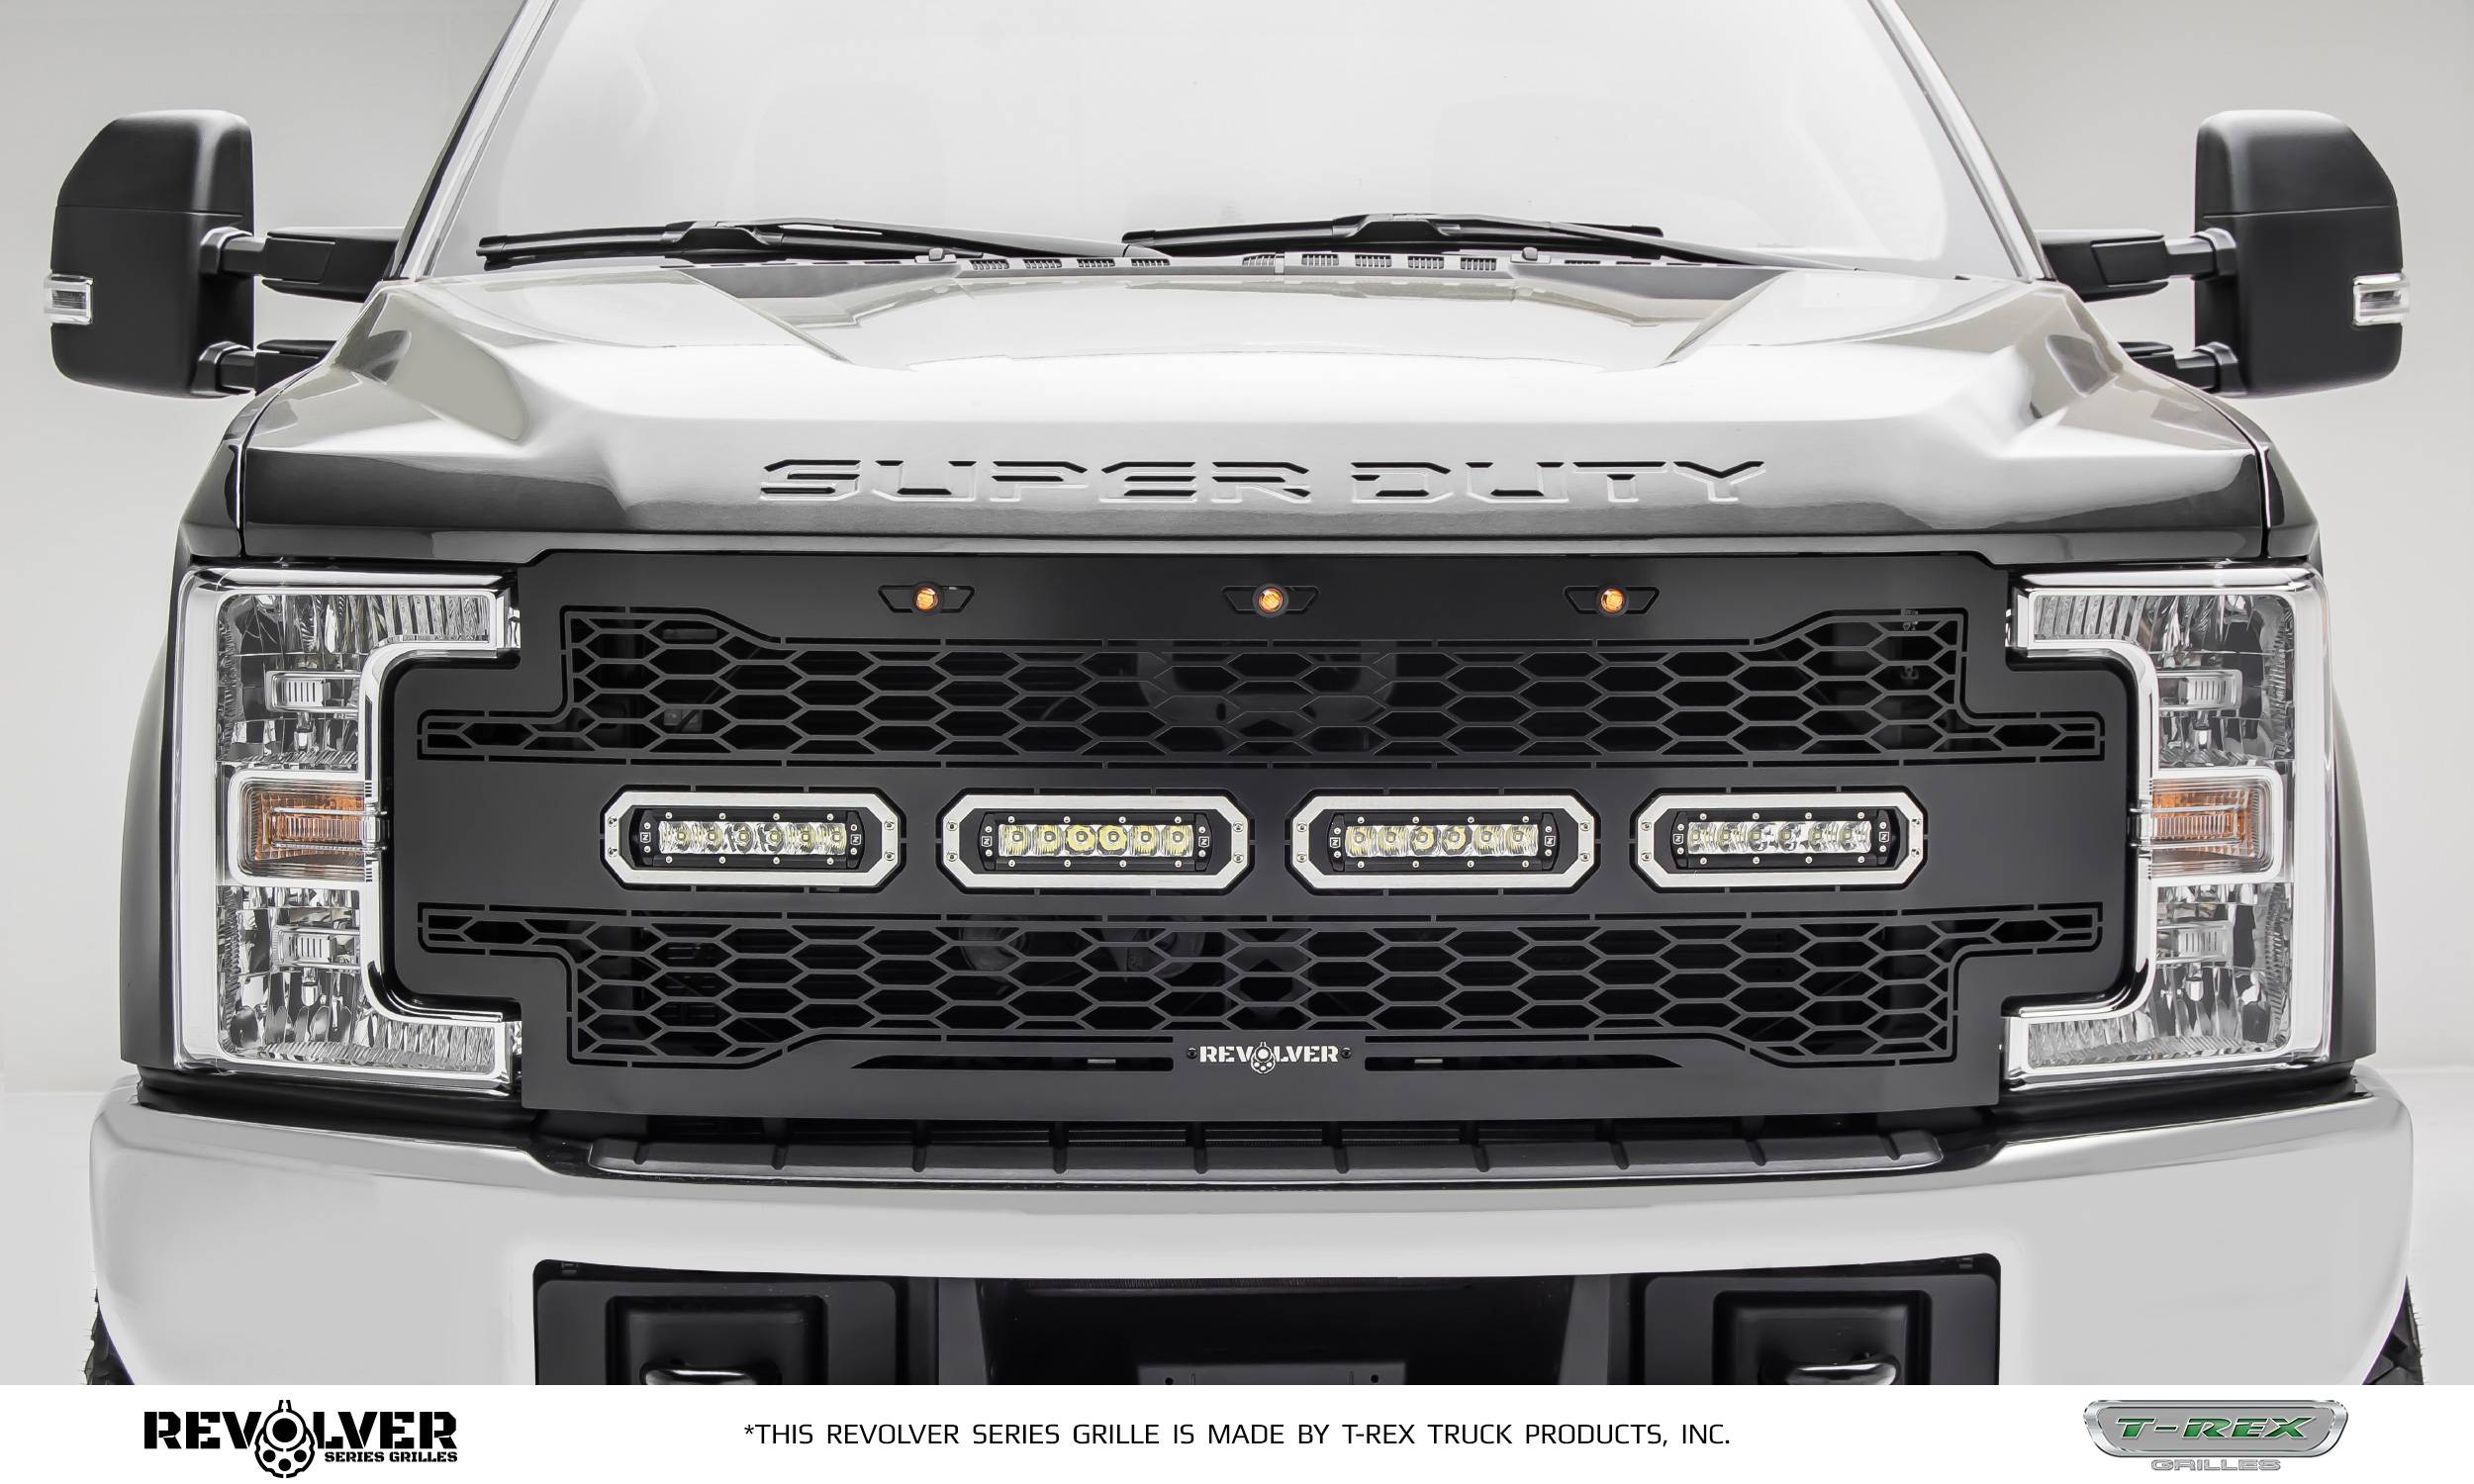 "T-REX GRILLES - 2017-2019 Super Duty Revolver Grille, Black, 1 Pc, Replacement with (4) 6"" LEDs, Does Not Fit Vehicles with Camera - PN #6515641"